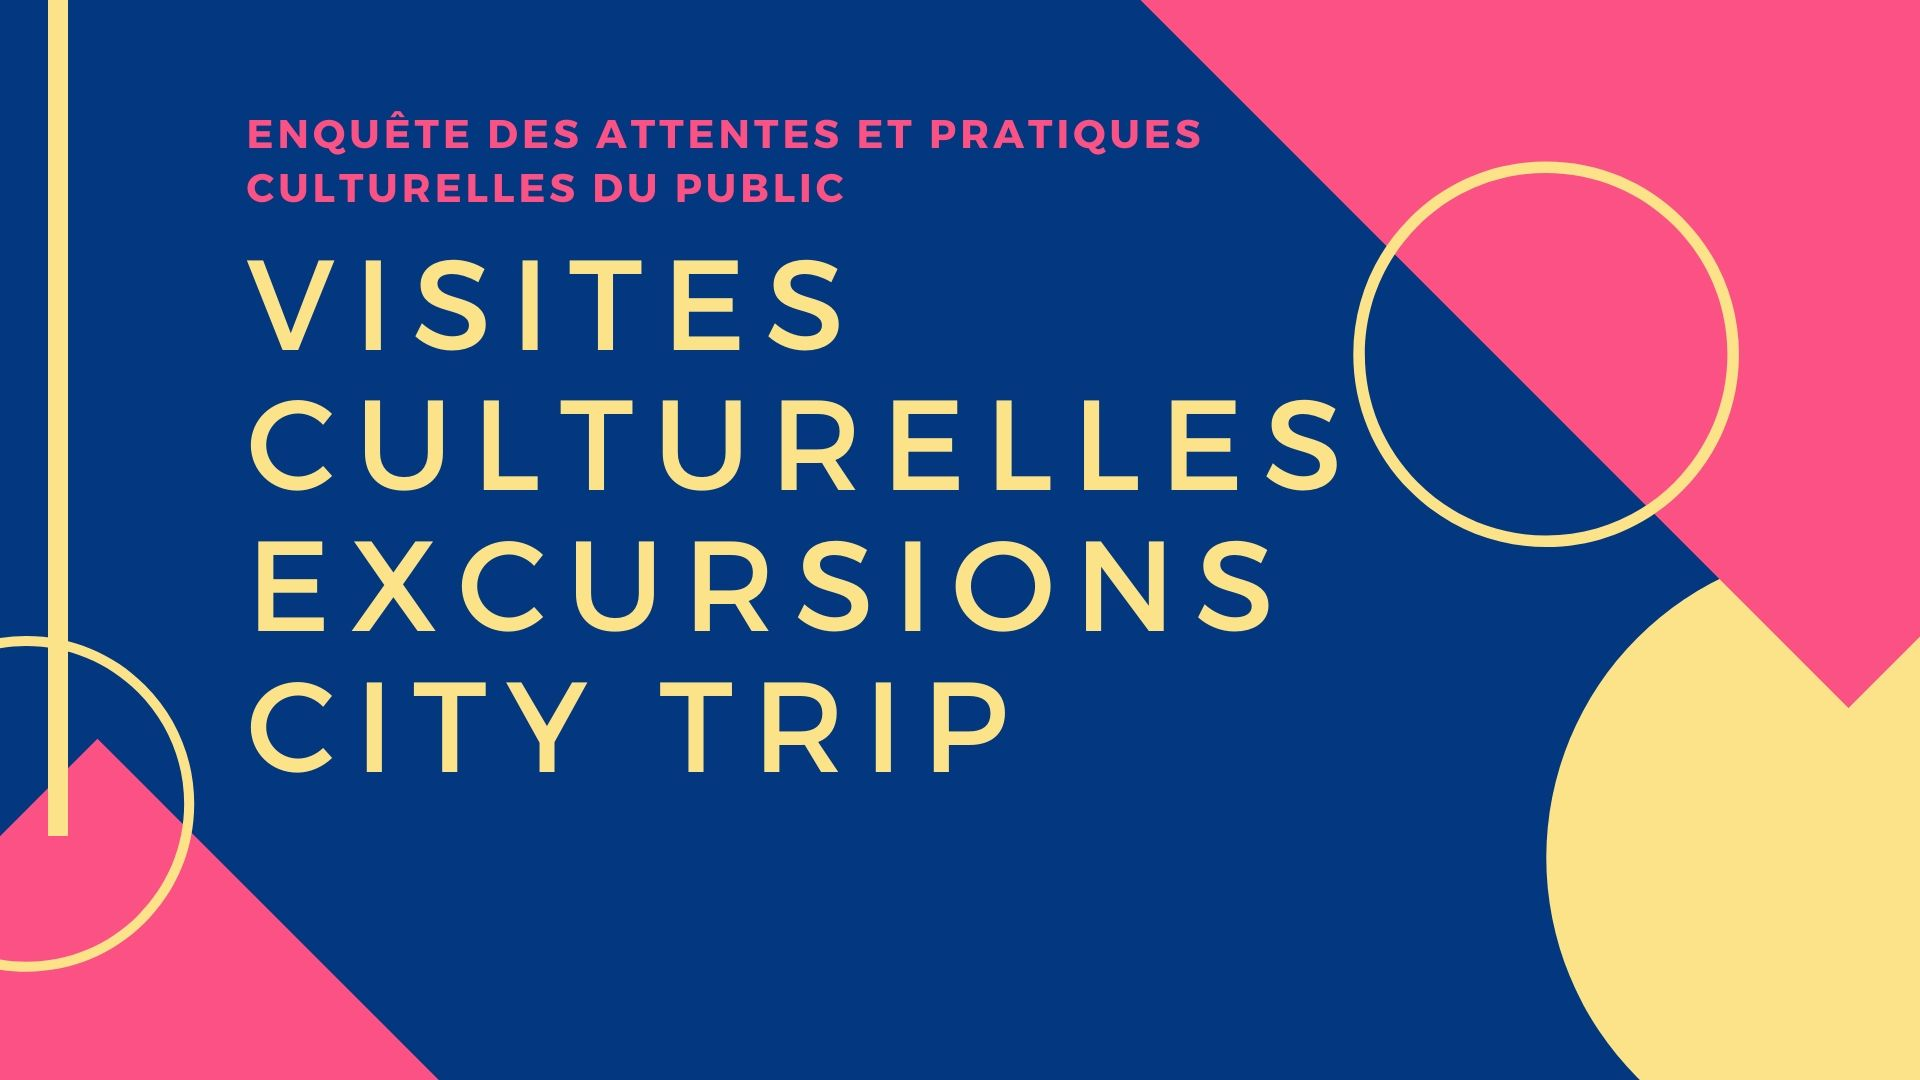 Visites culturelles excursions city trip